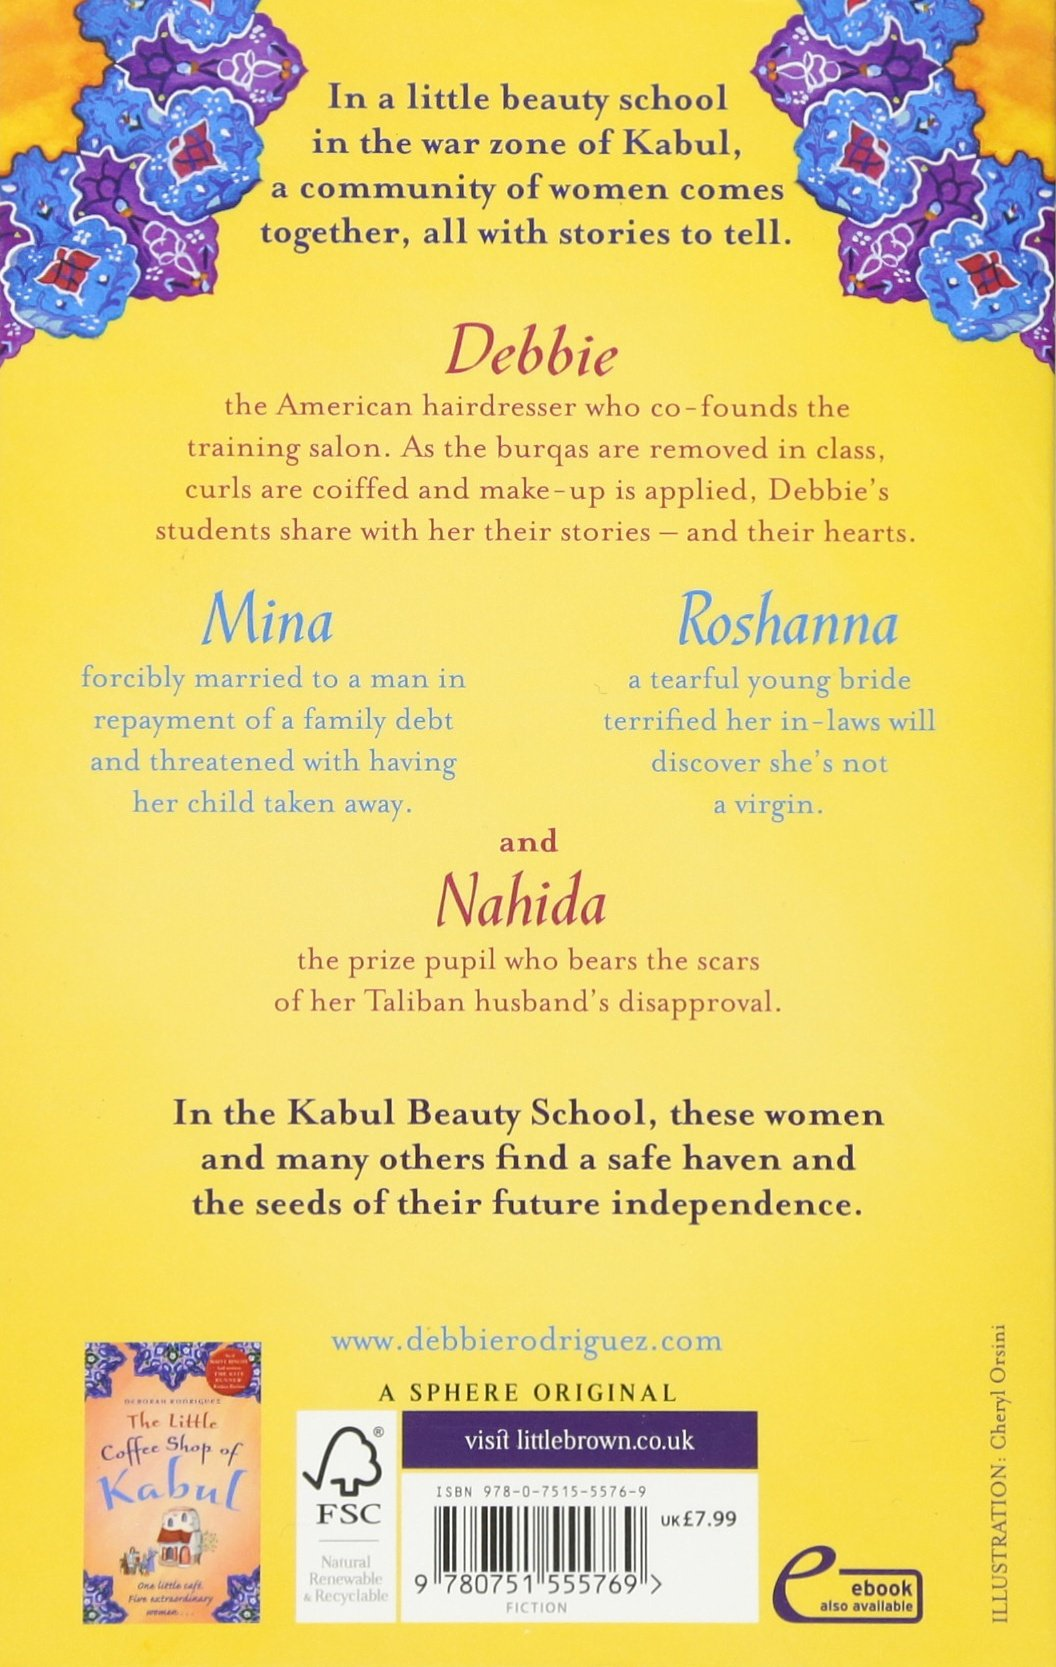 Buy The Kabul Beauty School Book Online at Low Prices in India | The Kabul  Beauty School Reviews & Ratings - Amazon.in